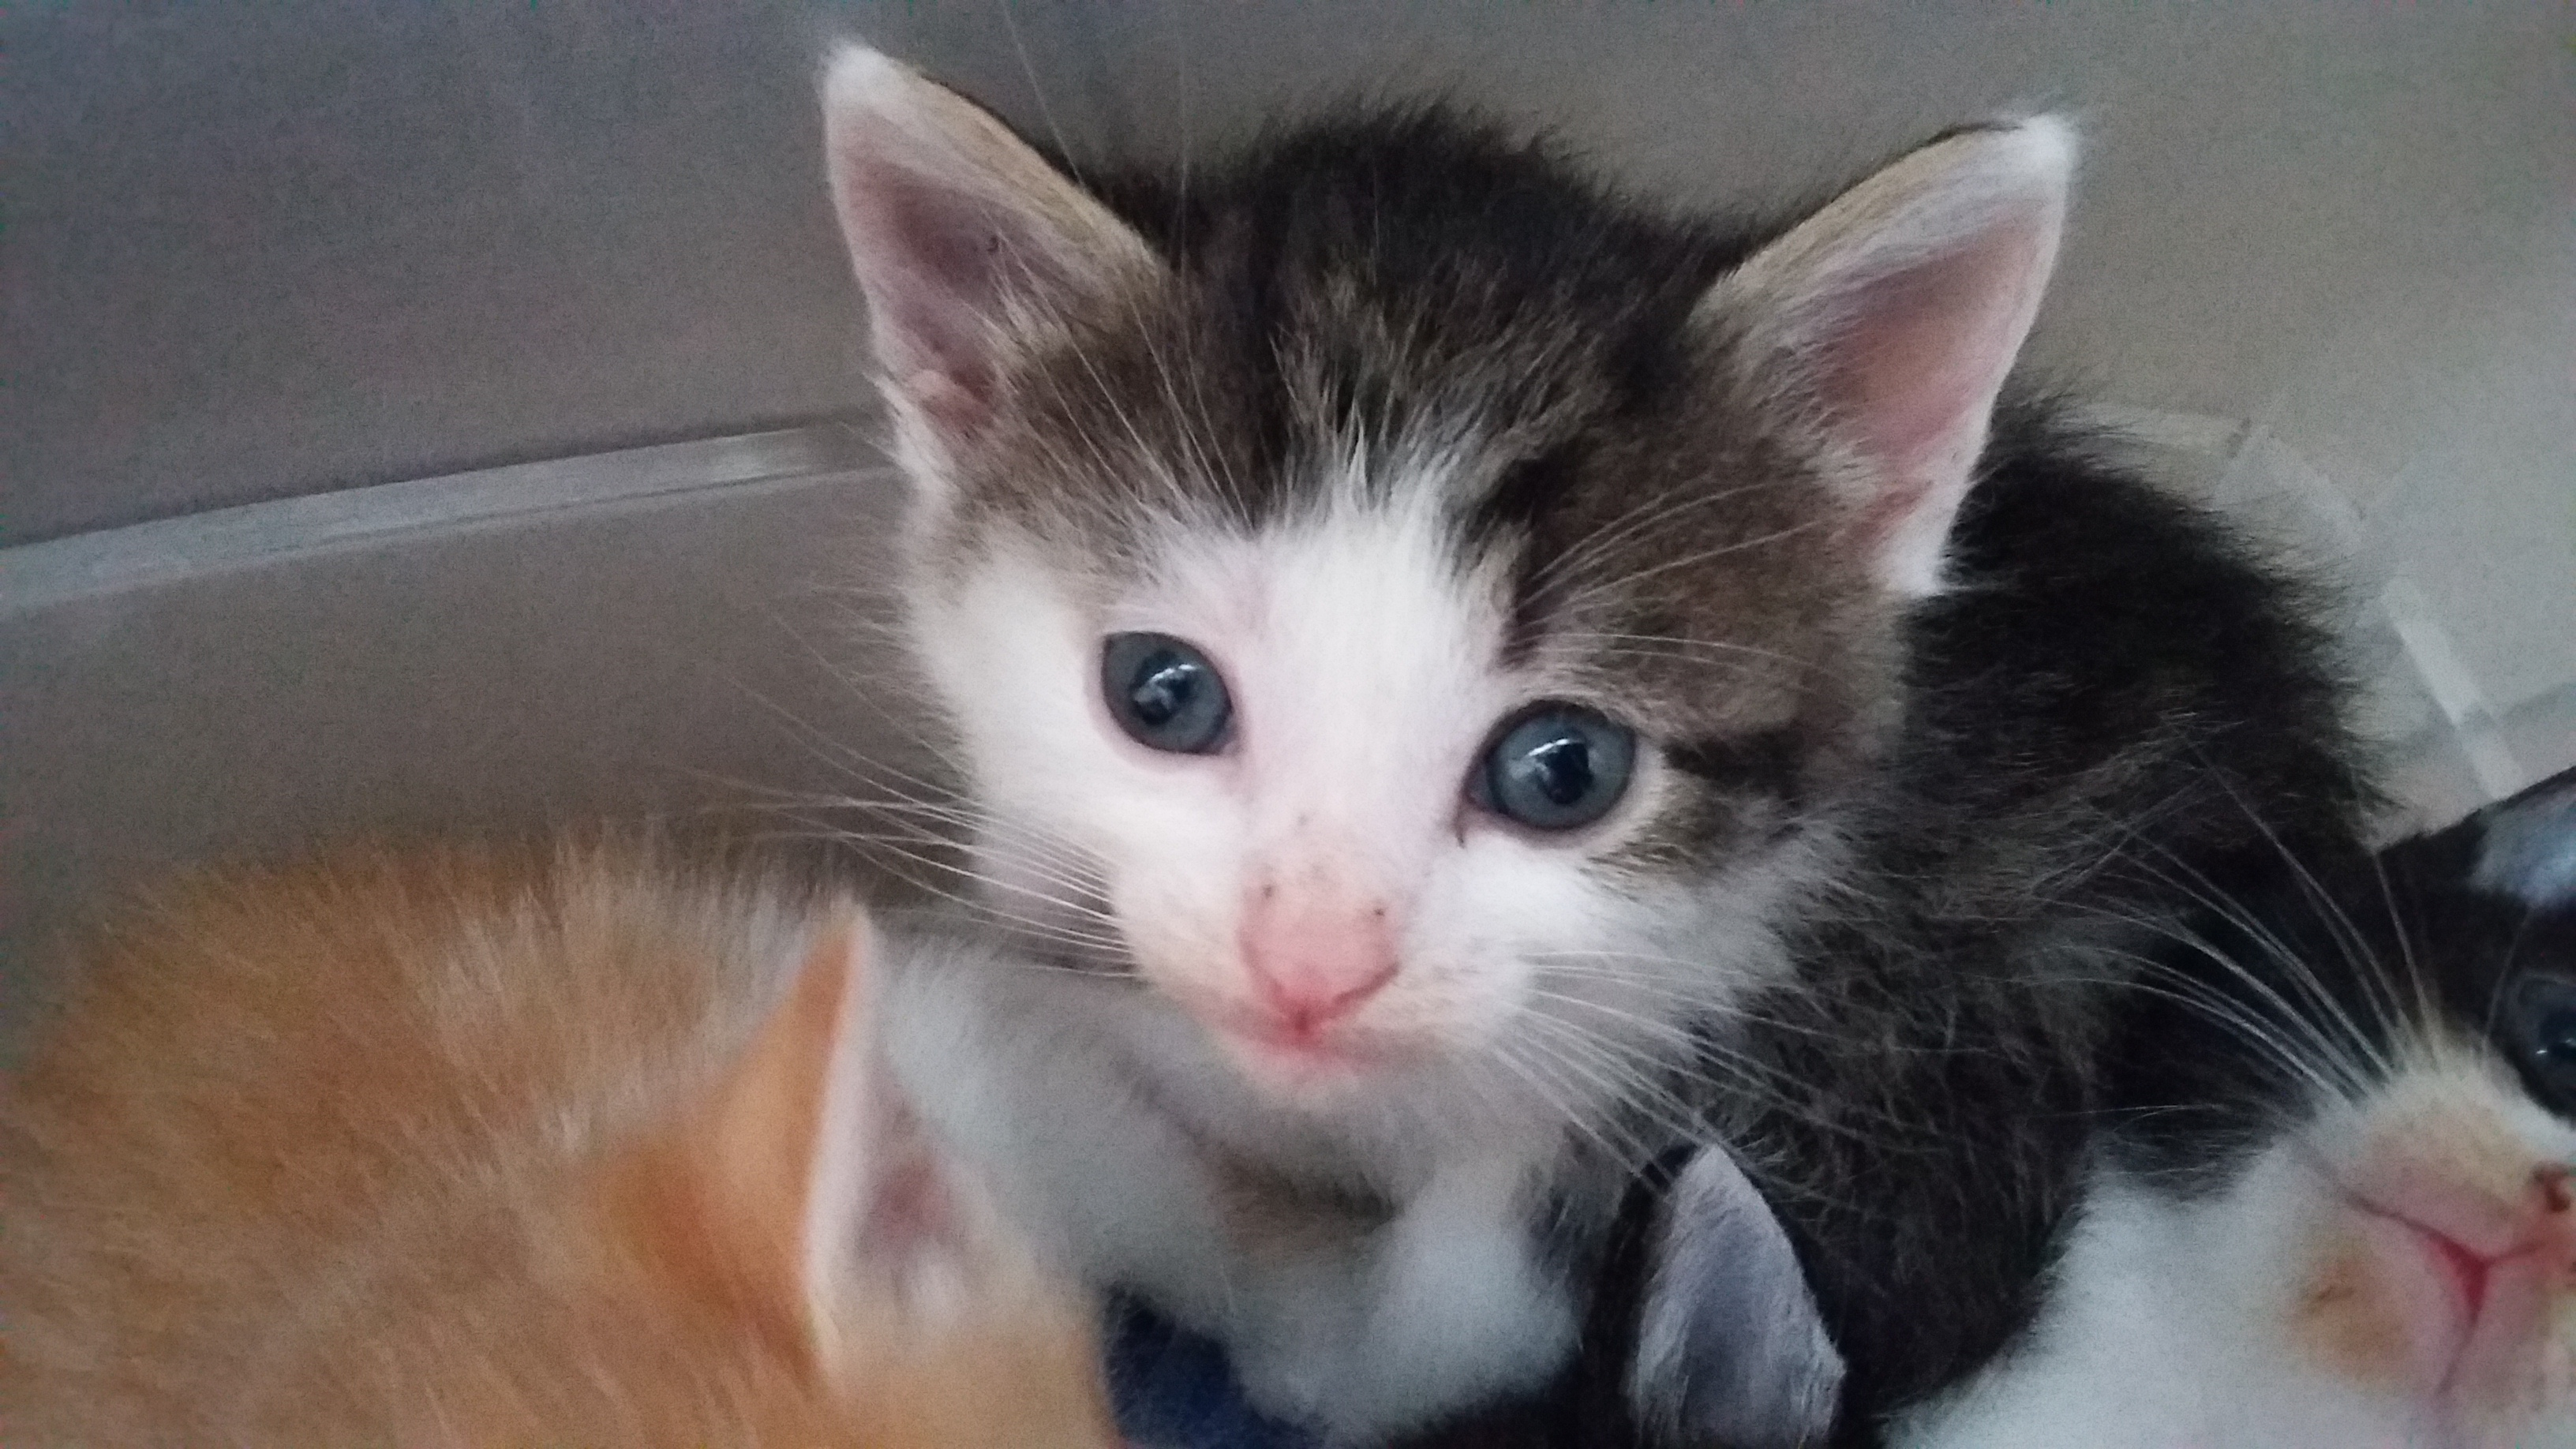 Reste 2 Chatons Males A Adopter Tous Adoptes Chat L Heureux